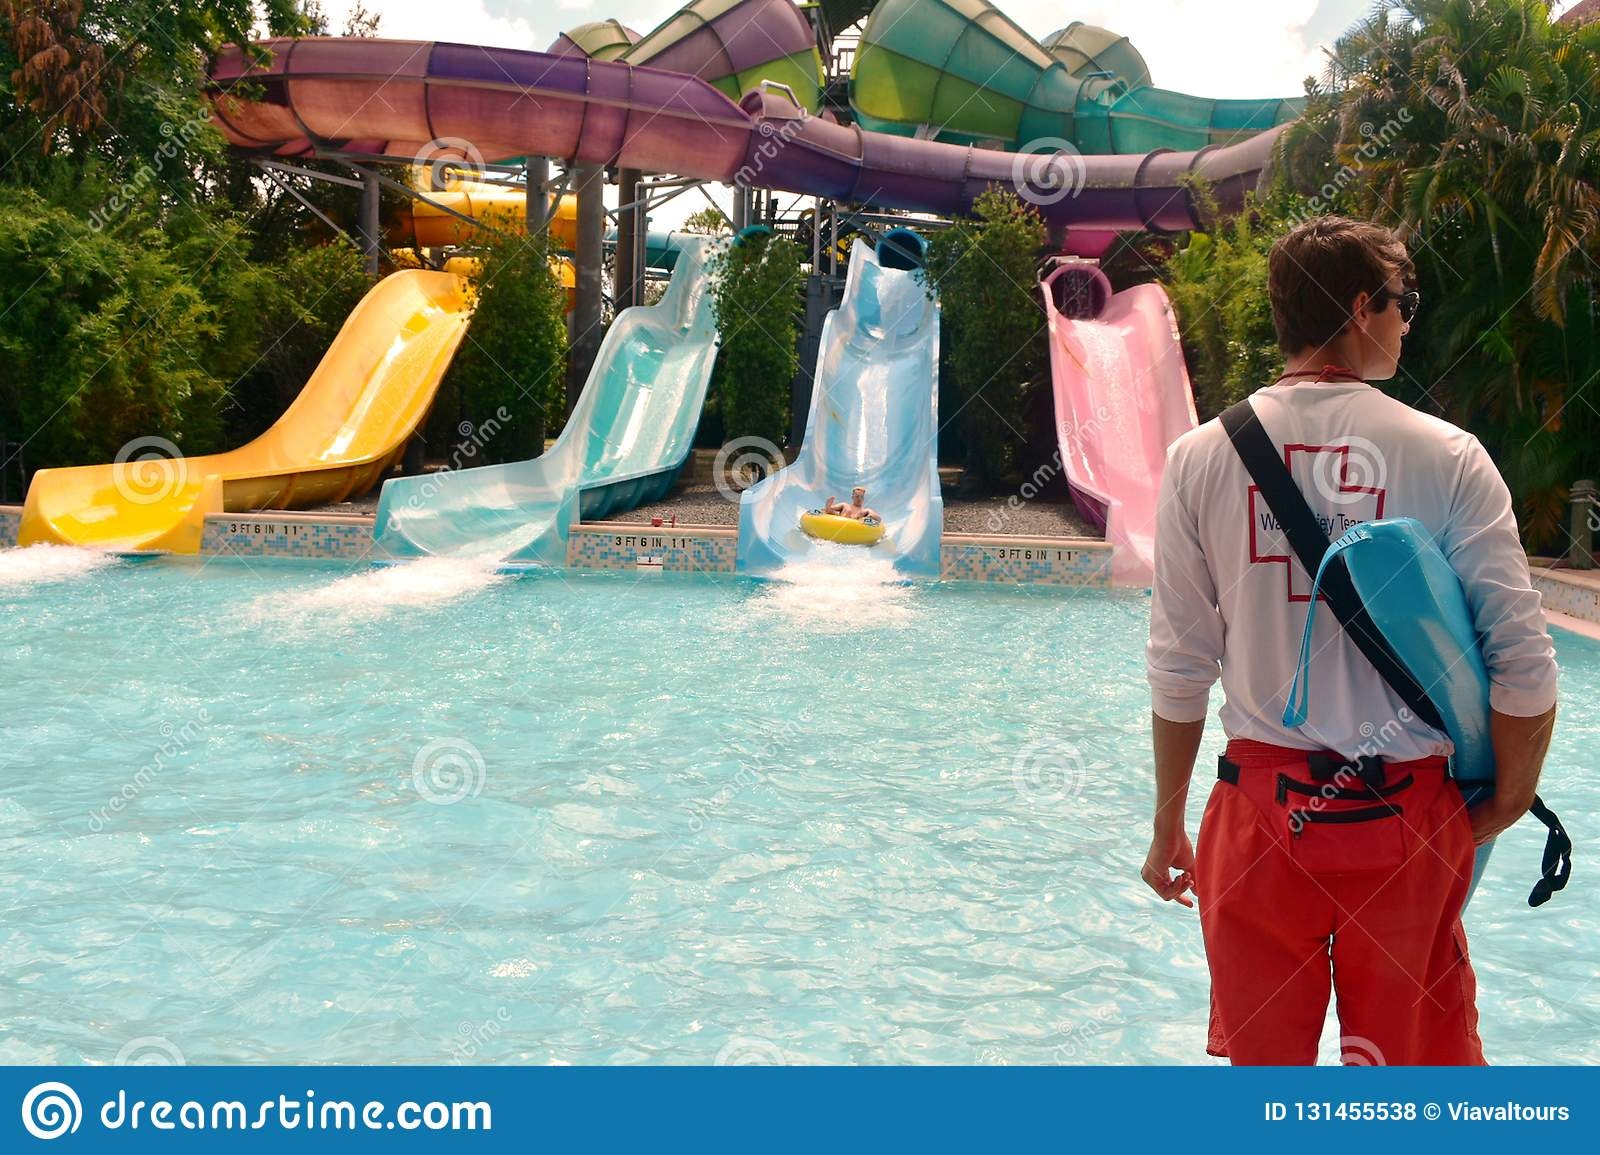 Lifeguard And Person Enjoying In Water Attraction At Aquatica Water